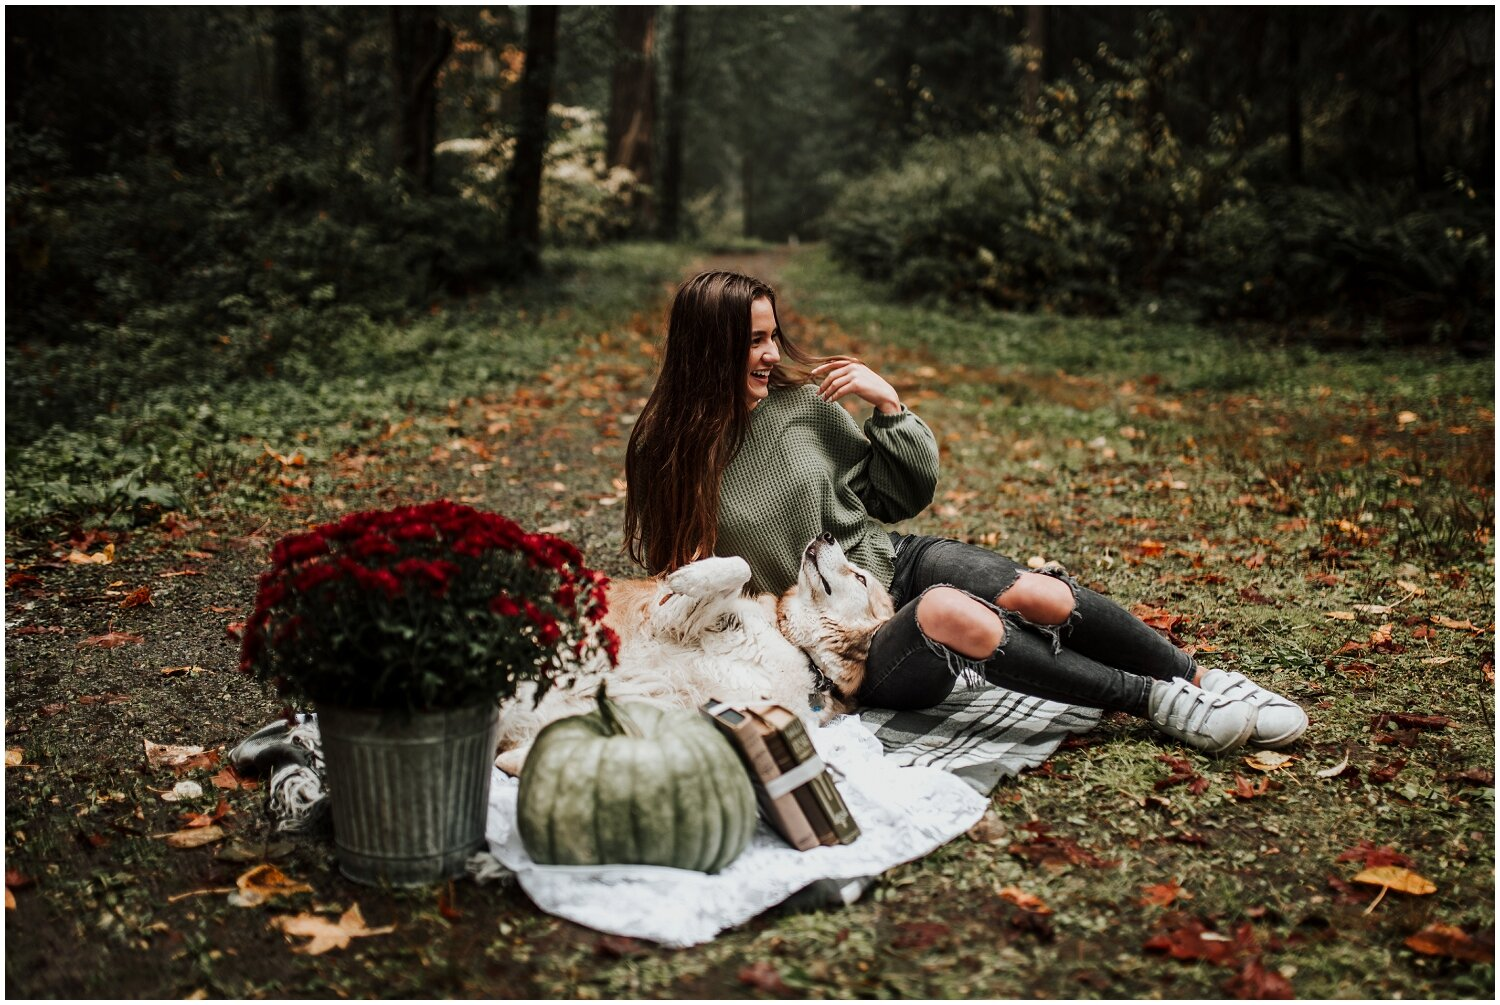 brittingham_photography_orting_washington_photographer_fall_holiday_mini_sessions_0005.jpg